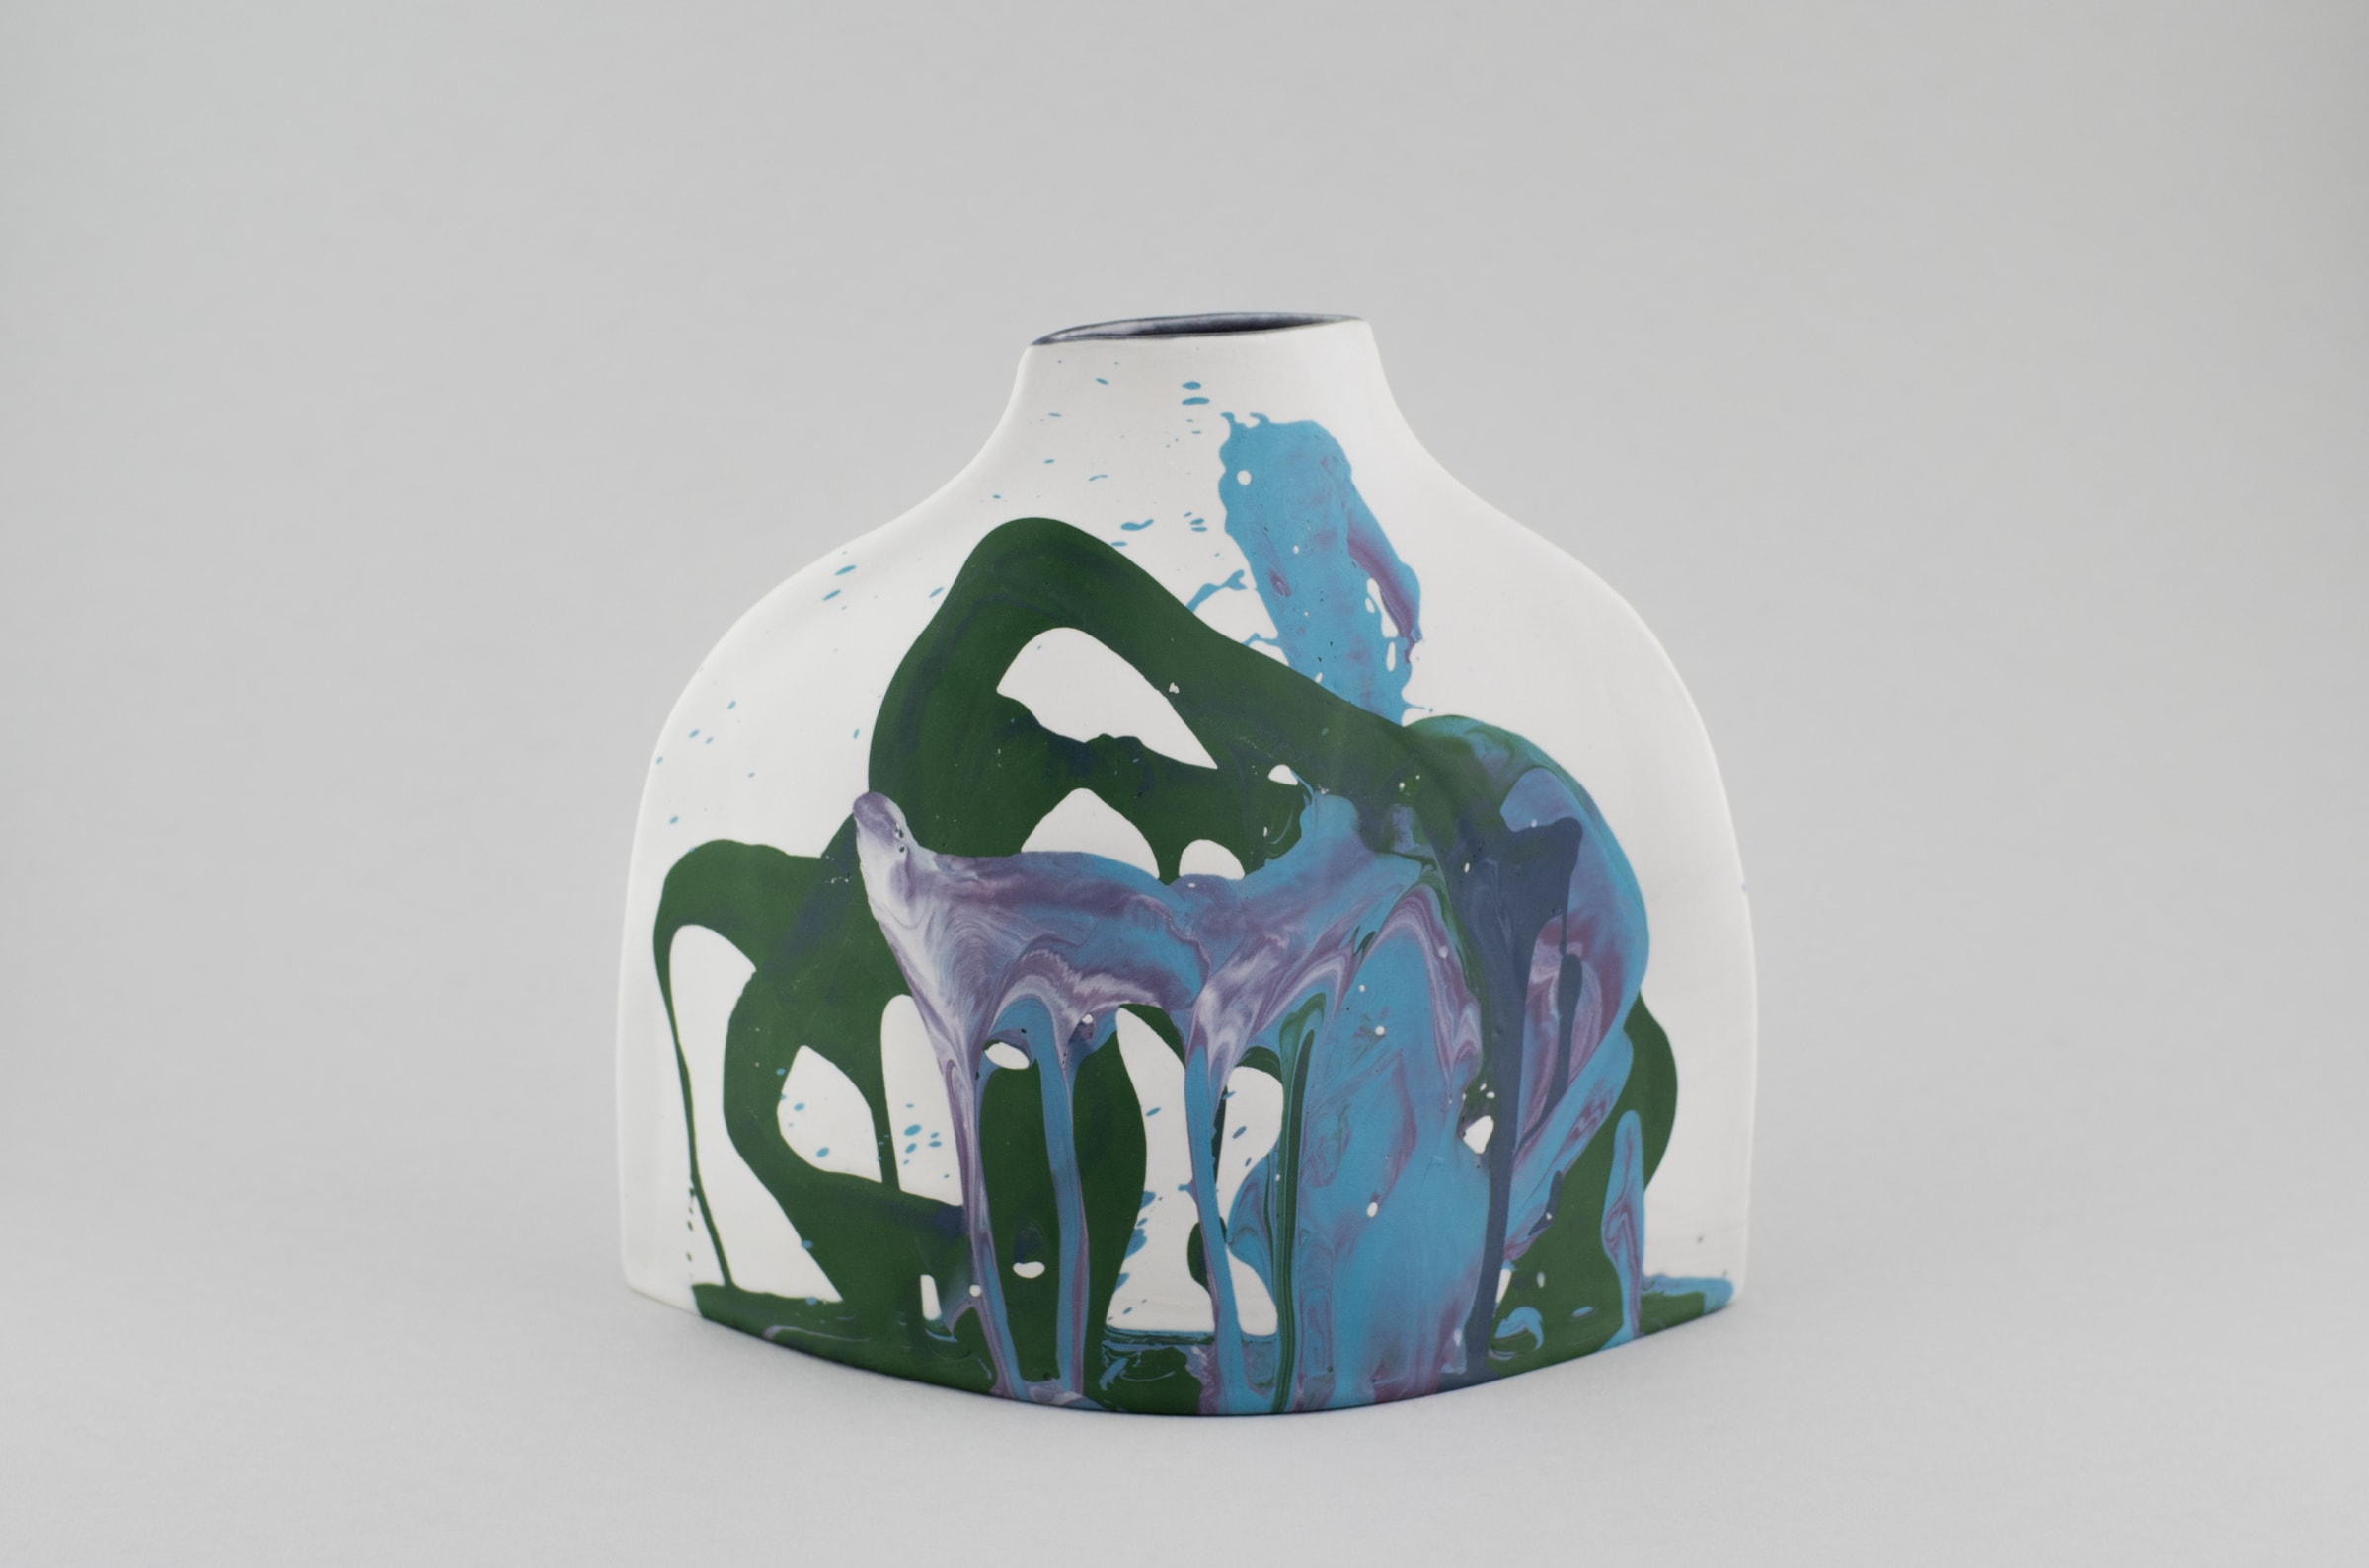 """<span class=""""link fancybox-details-link""""><a href=""""/artists/219-james-pegg/works/6783-james-pegg-shoulder-vase-2019/"""">View Detail Page</a></span><div class=""""artist""""><strong>James Pegg</strong></div> <div class=""""title""""><em>Shoulder Vase</em>, 2019</div> <div class=""""medium"""">action-cast stained porcelain with glazed interior <br />  (in collaboration with Lucia Fraser)</div> <div class=""""dimensions"""">h 20 cm x w 17.5 cm</div><div class=""""price"""">£205.00</div><div class=""""copyright_line"""">OwnArt: £ 20.50 x 10 Months, 0% APR </div>"""